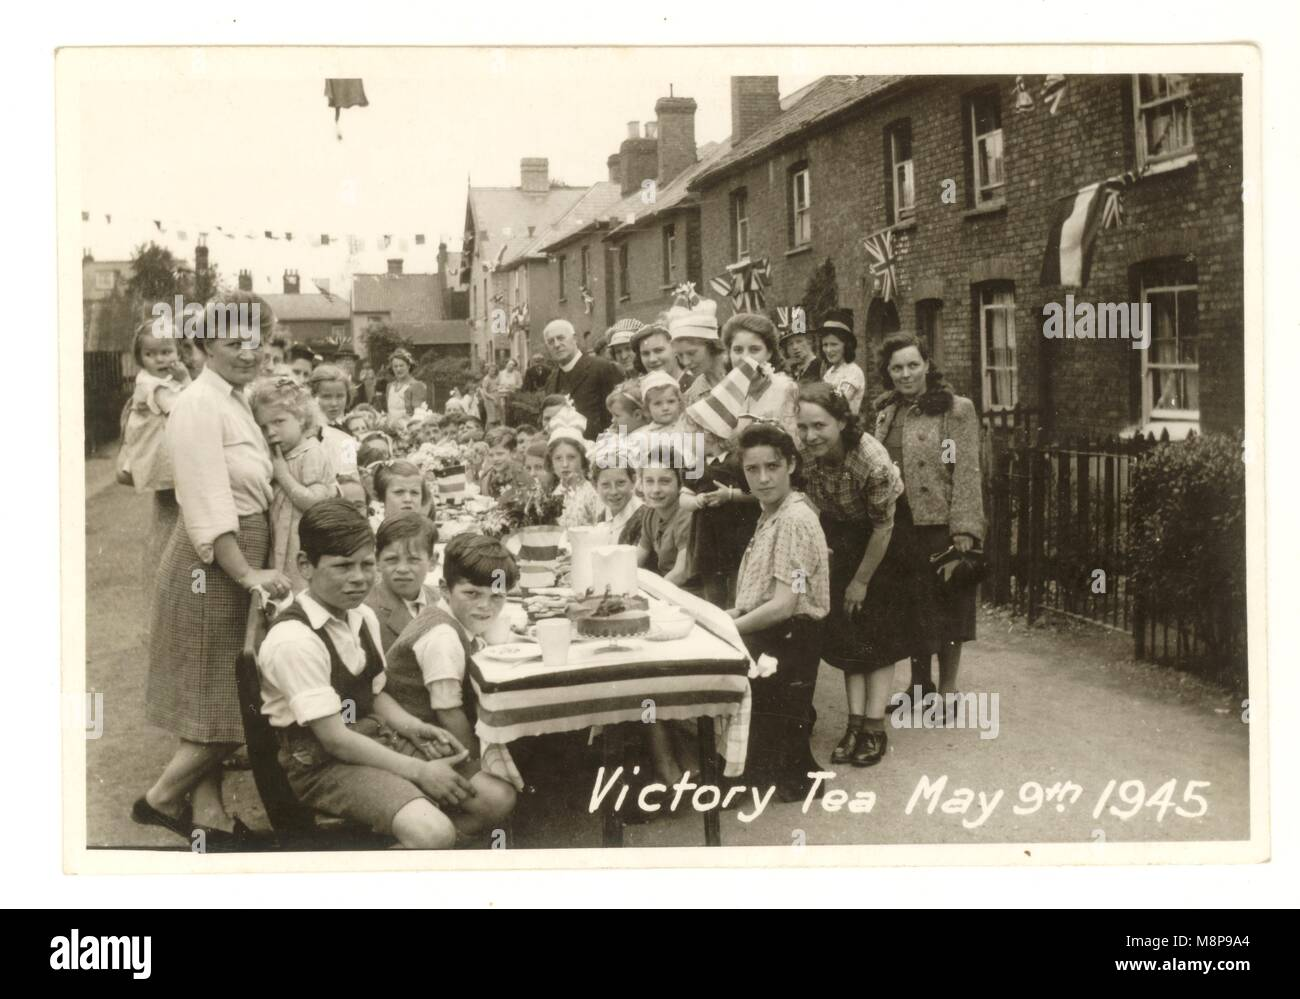 Postcard Victory tea street party, May 9th 1945,to celebrate the ending of 2nd World War, Stanstead Abbbotts, East - Stock Image